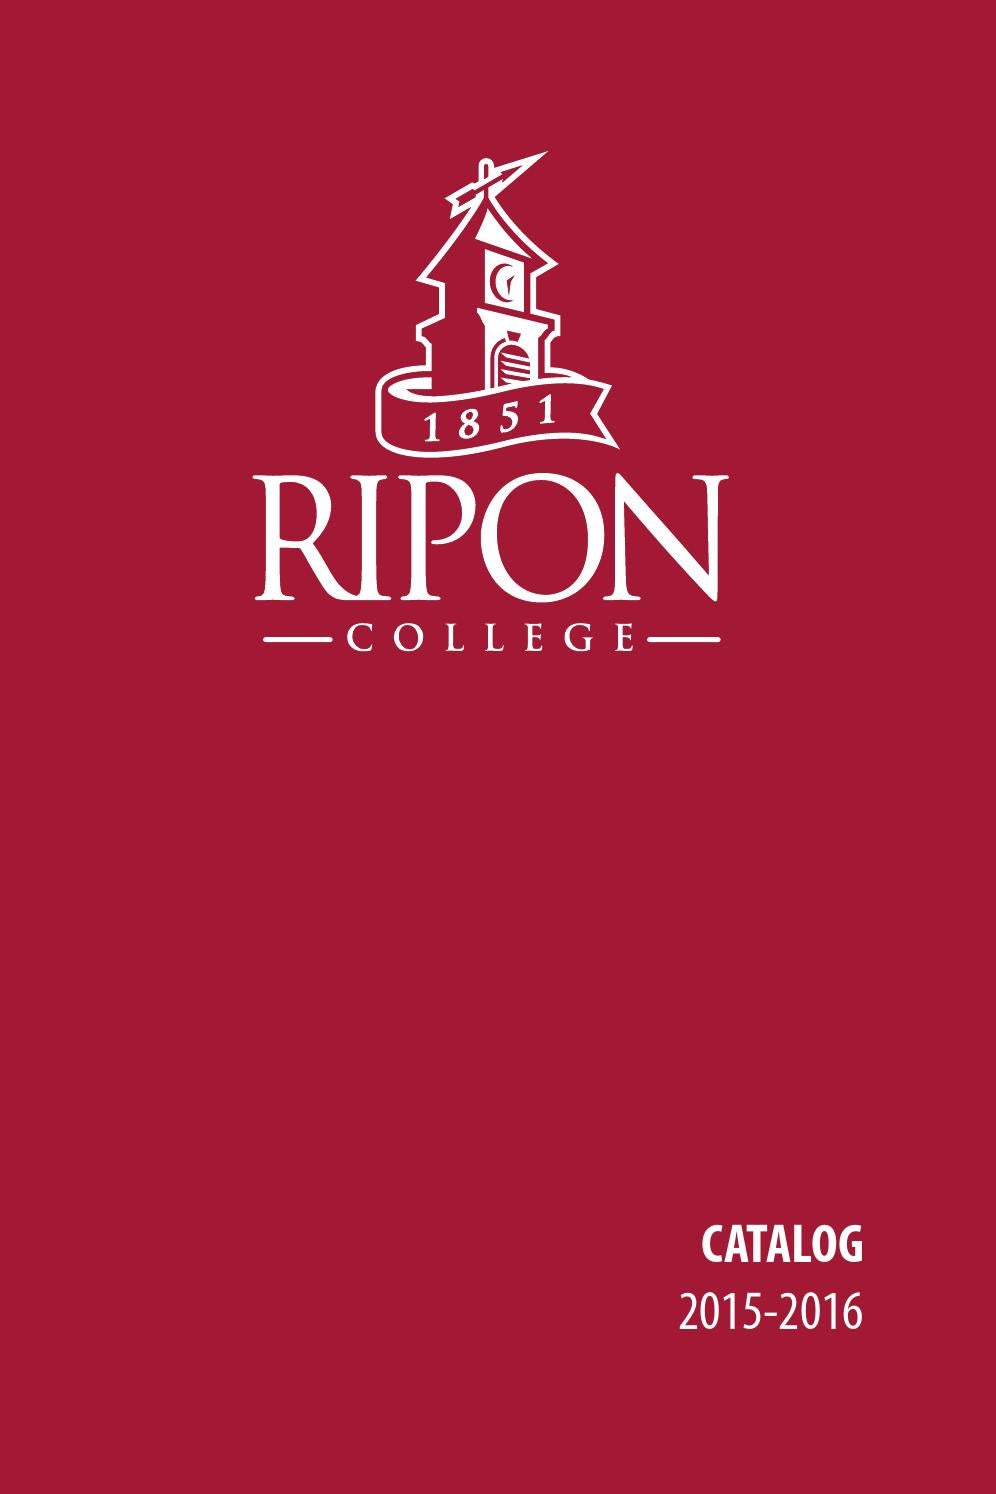 Ripon College Catalog 2015-16 by Ripon College - issuu